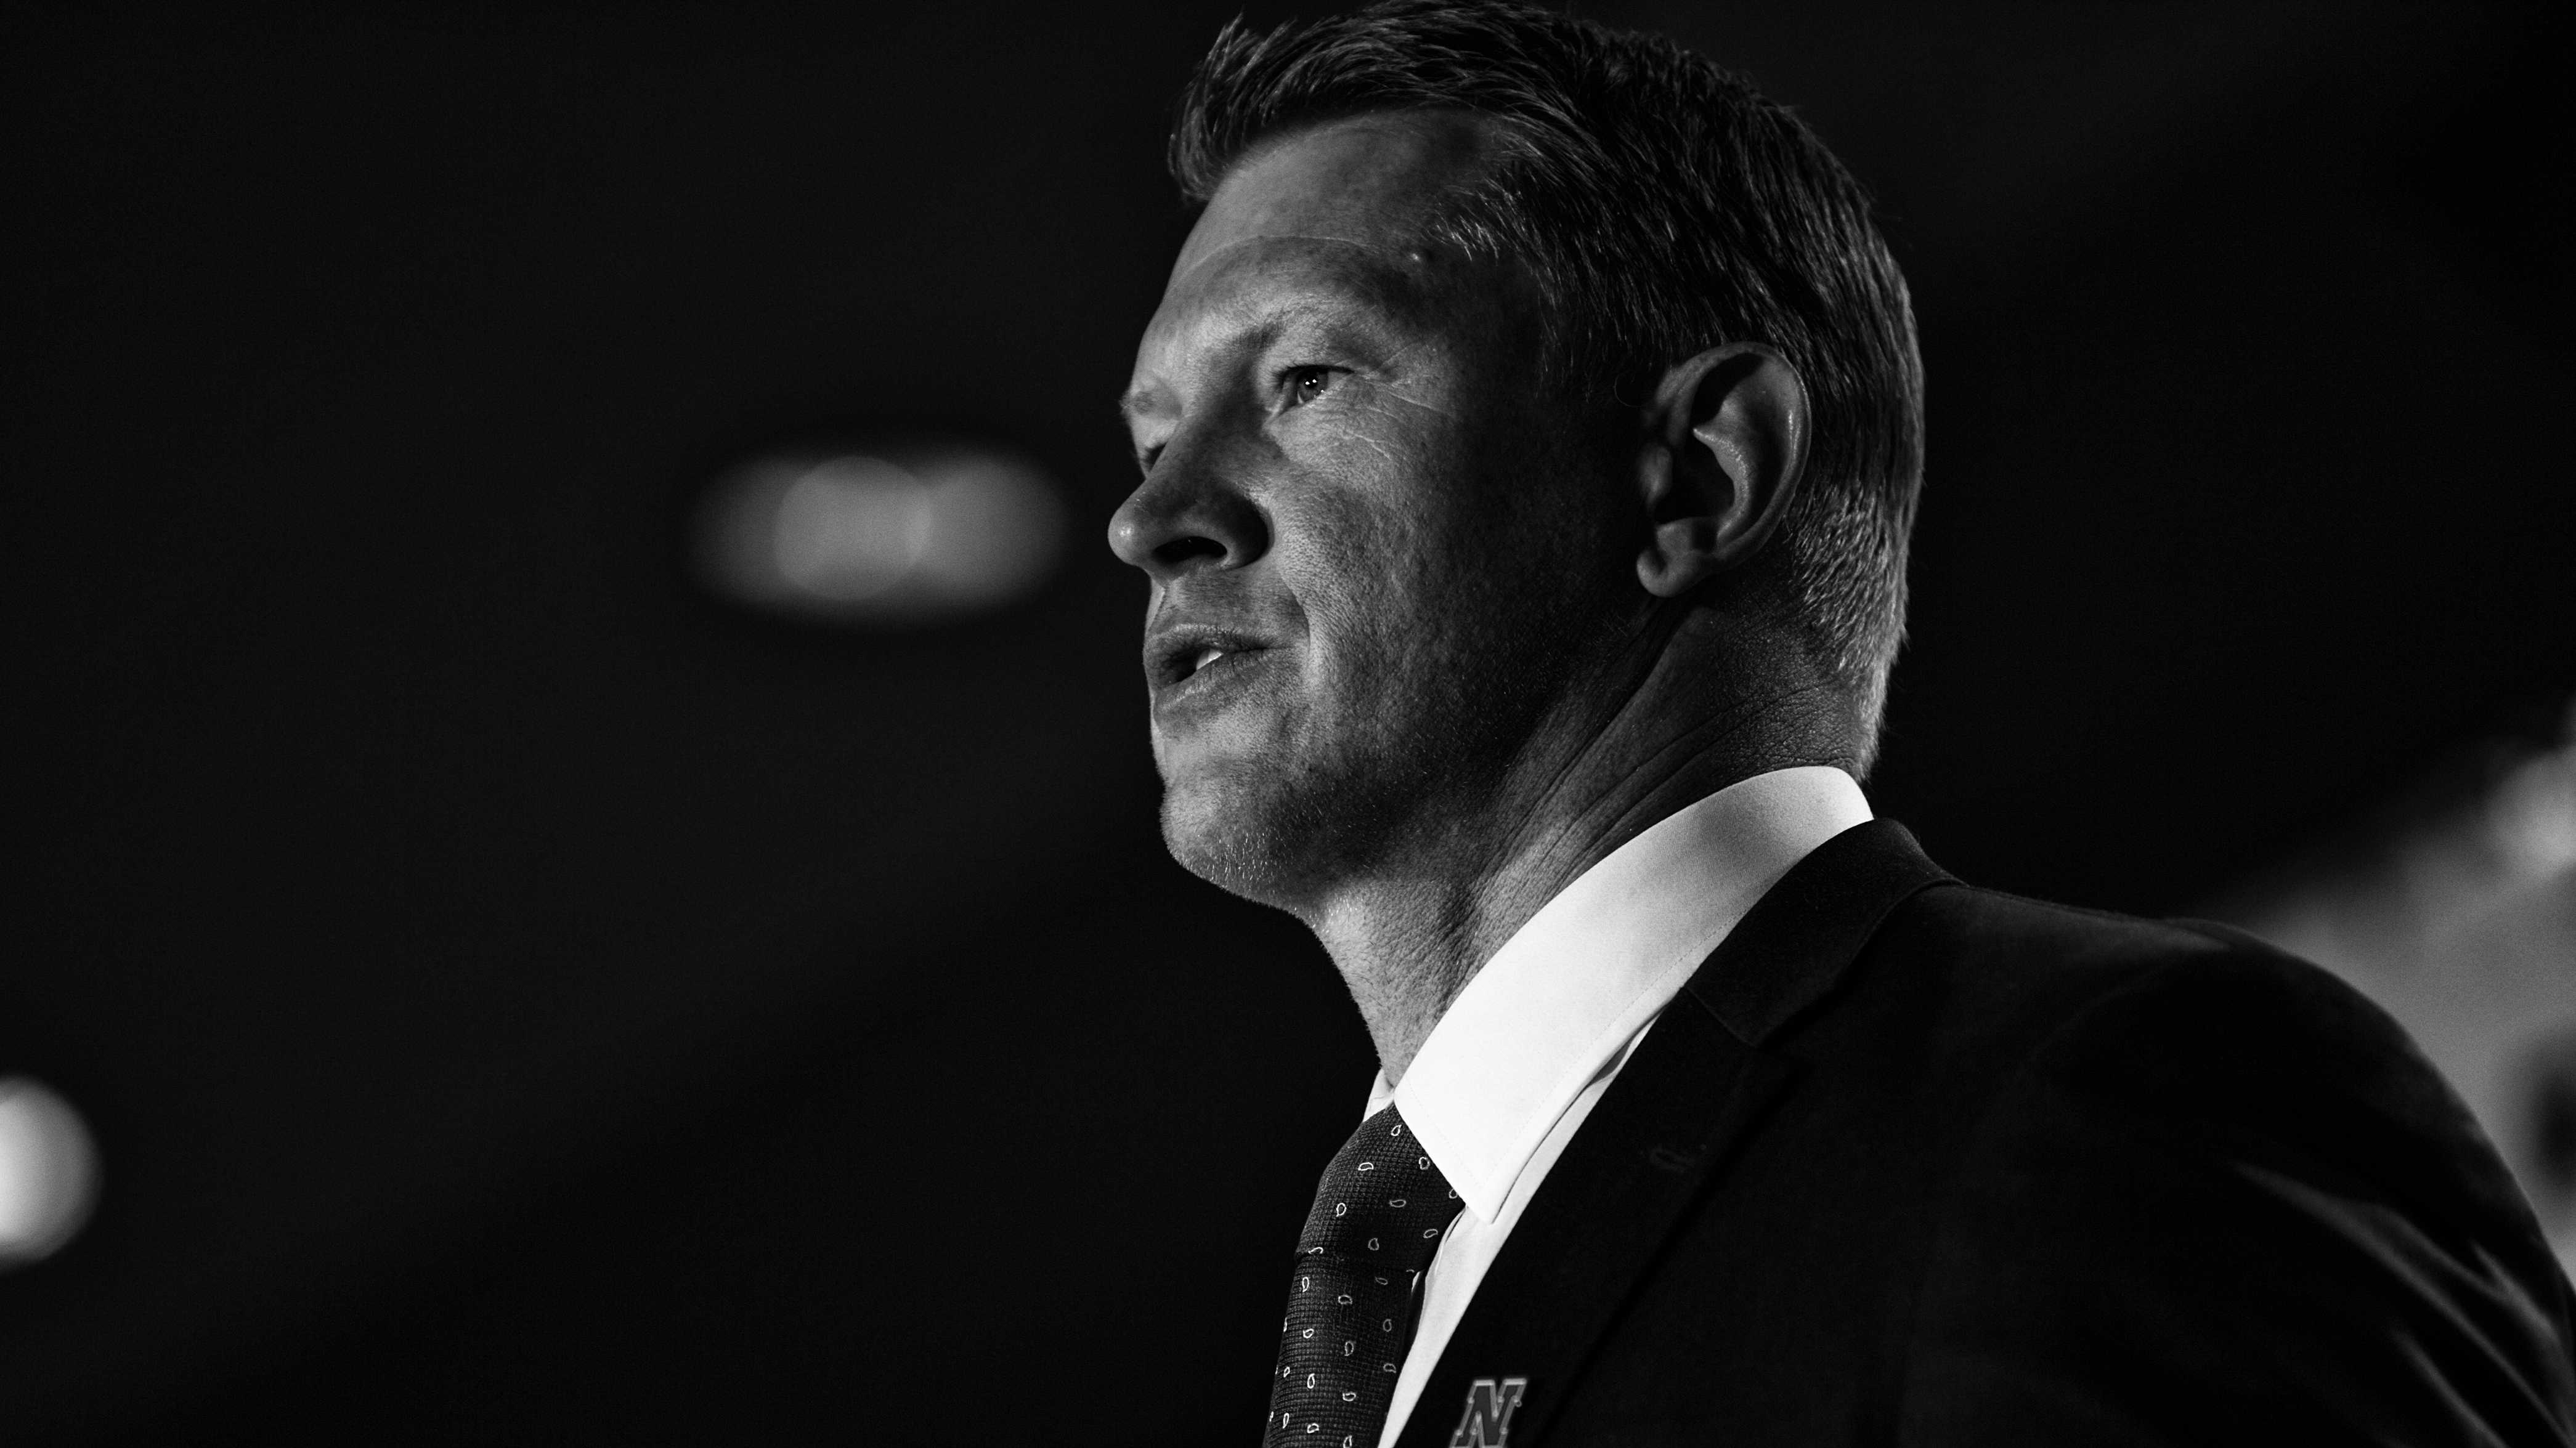 Nebraska Head Coach Scott Frost addresses the media at Big Ten Football Media Days in Chicago on Monday, July 23, 2018. (Nick Rohlman/The Daily Iowan)